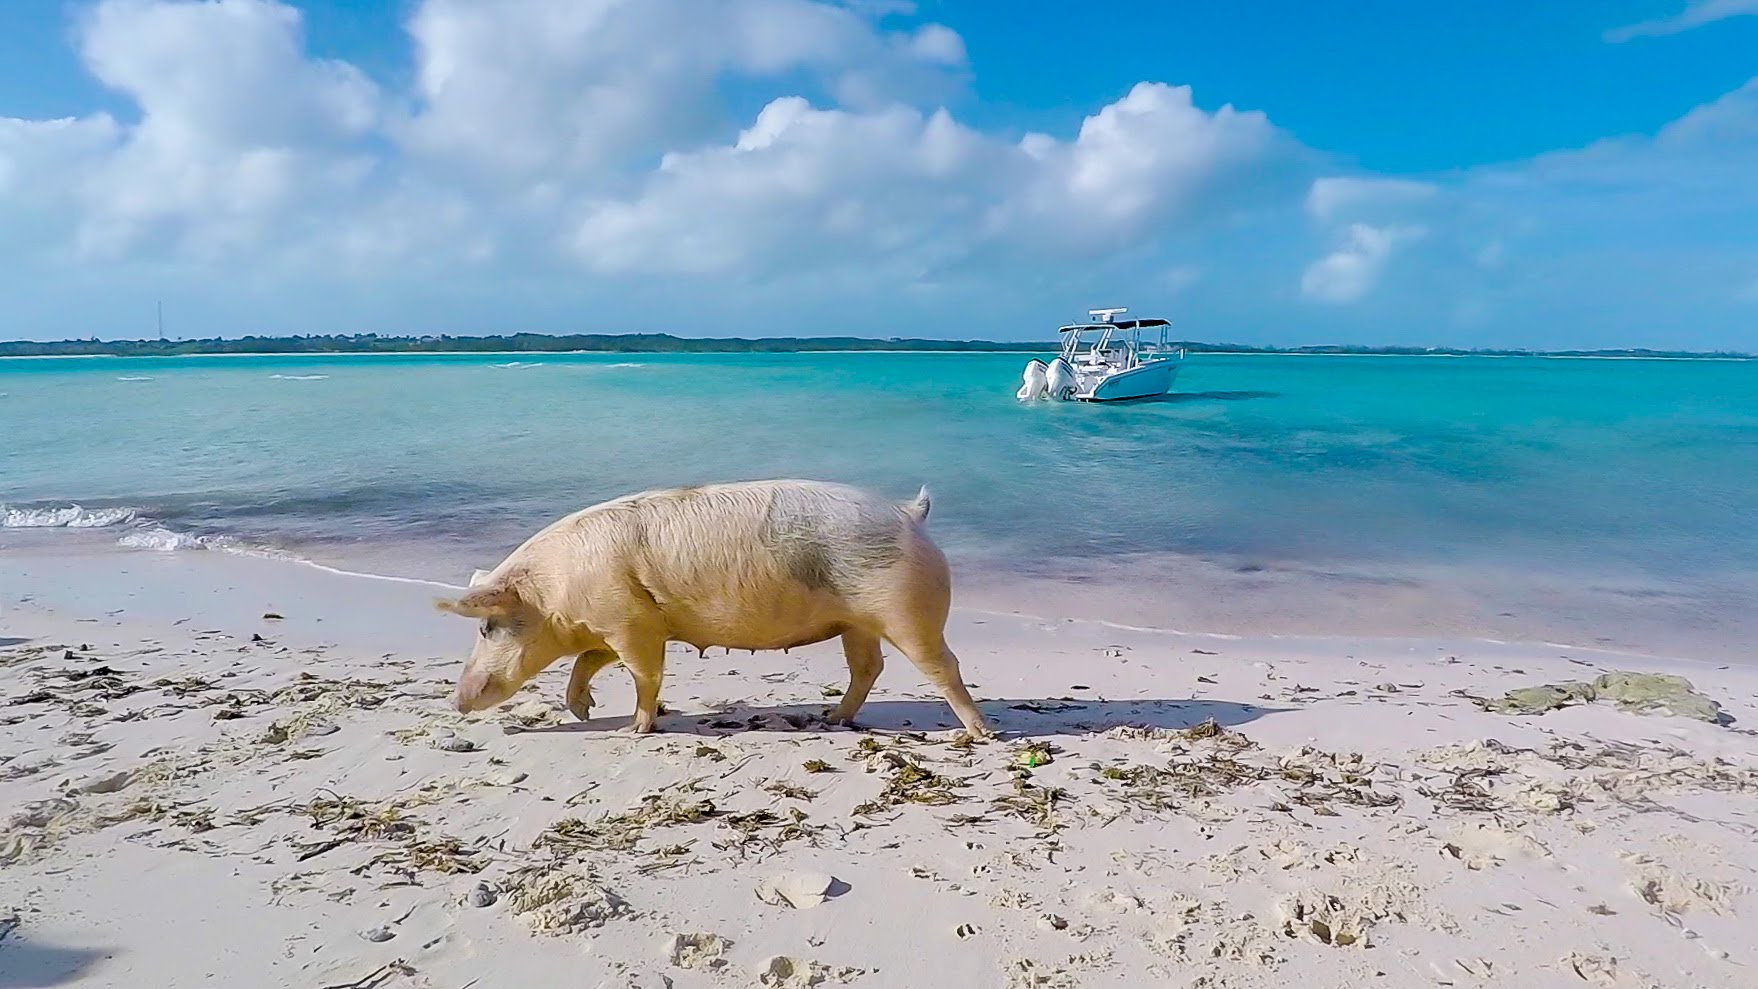 Big Major's Cay The Exumas, Swimming with the pigs at Big Major Cay in the Exumas - YouTube